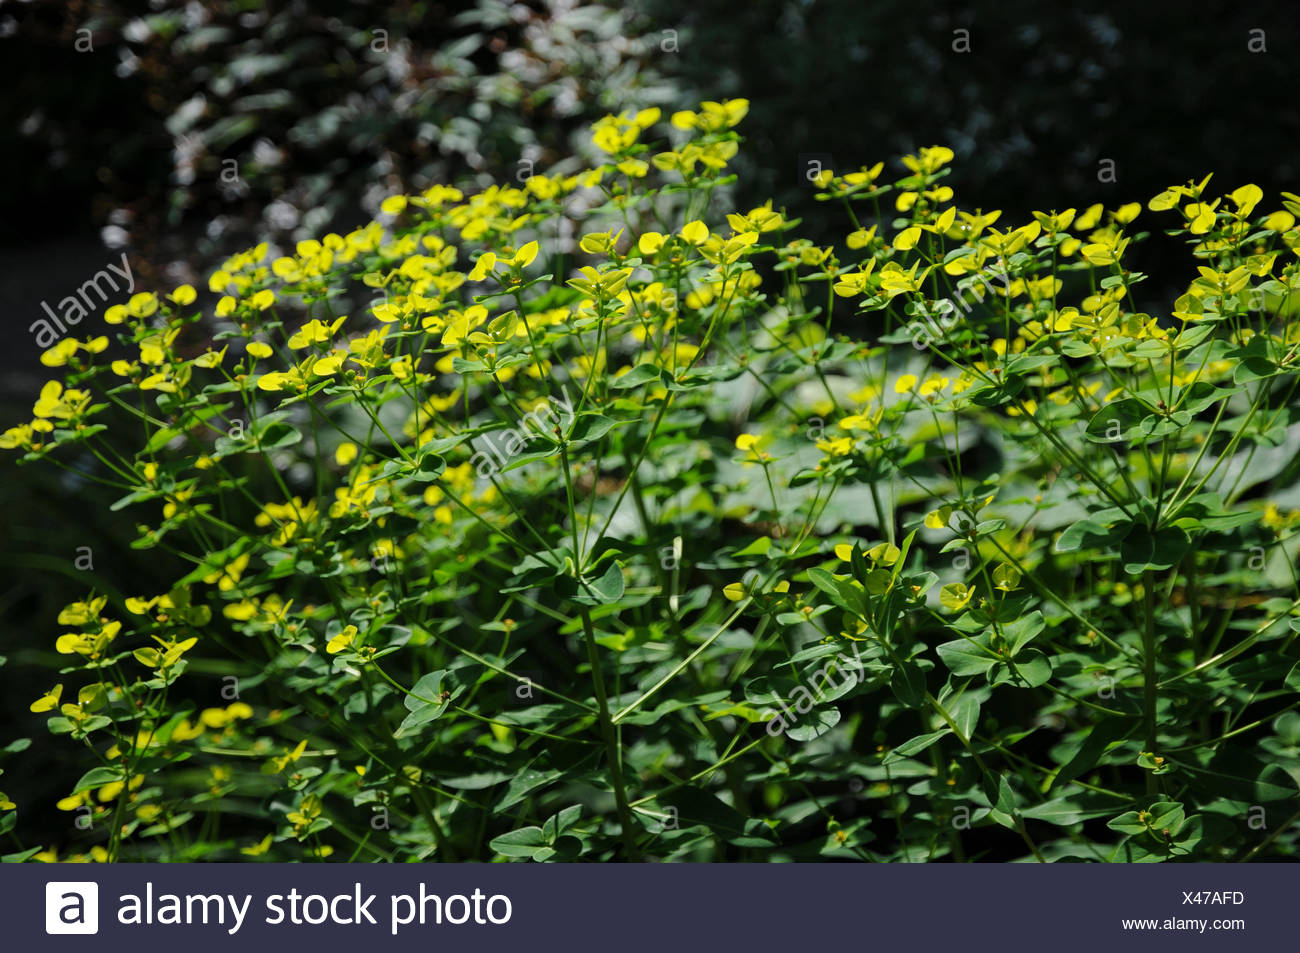 Wallich spurge - Stock Image